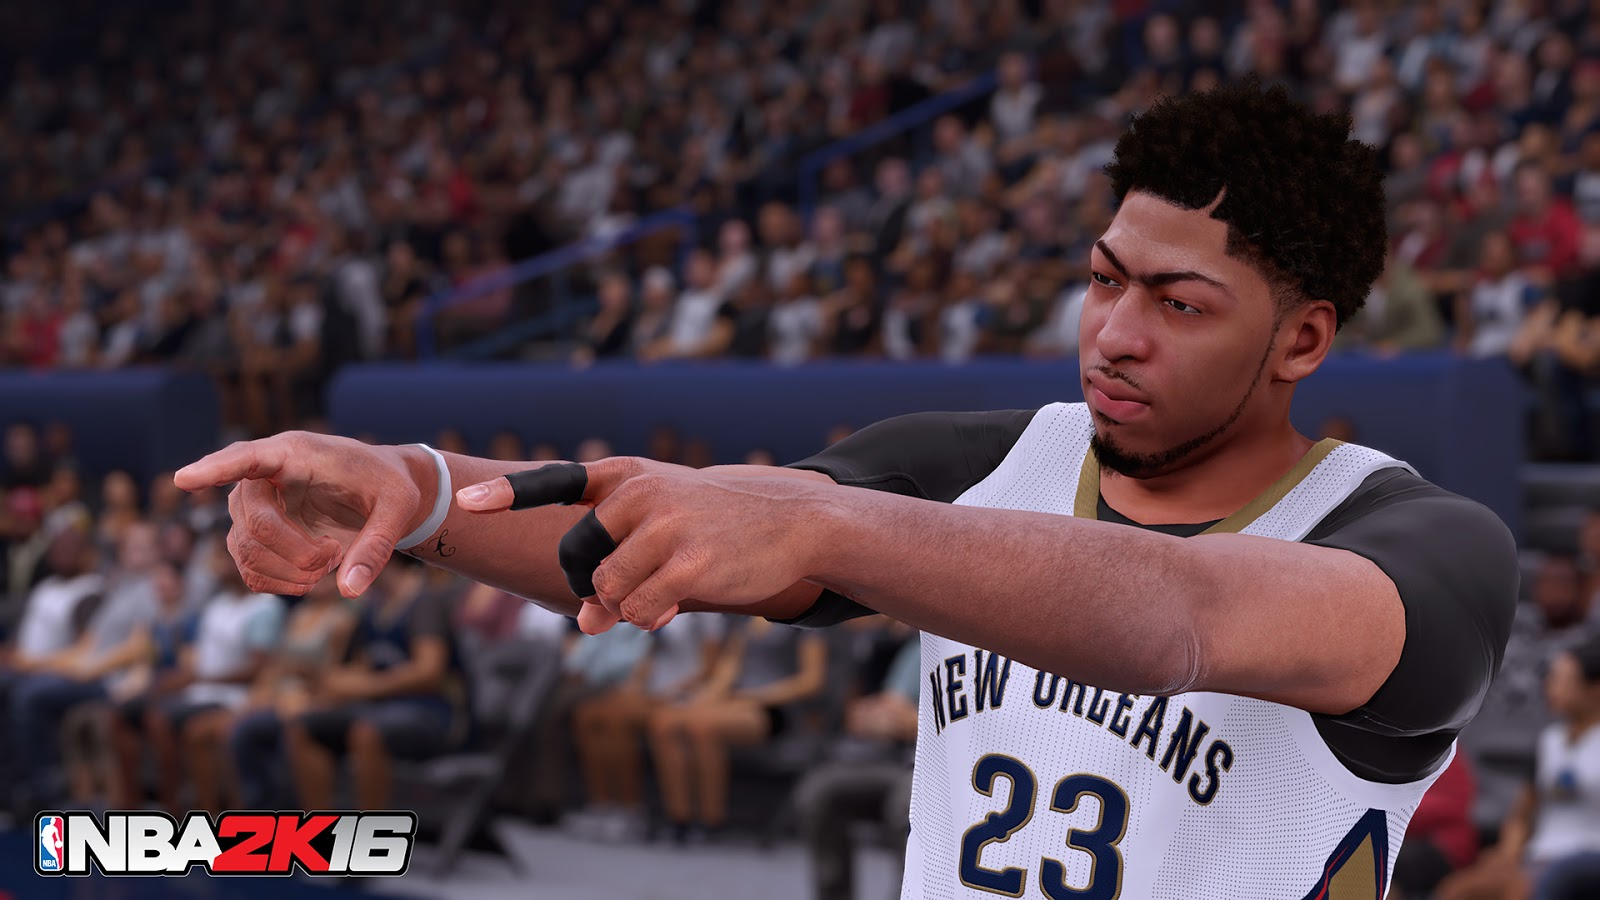 Download NBA 2k16